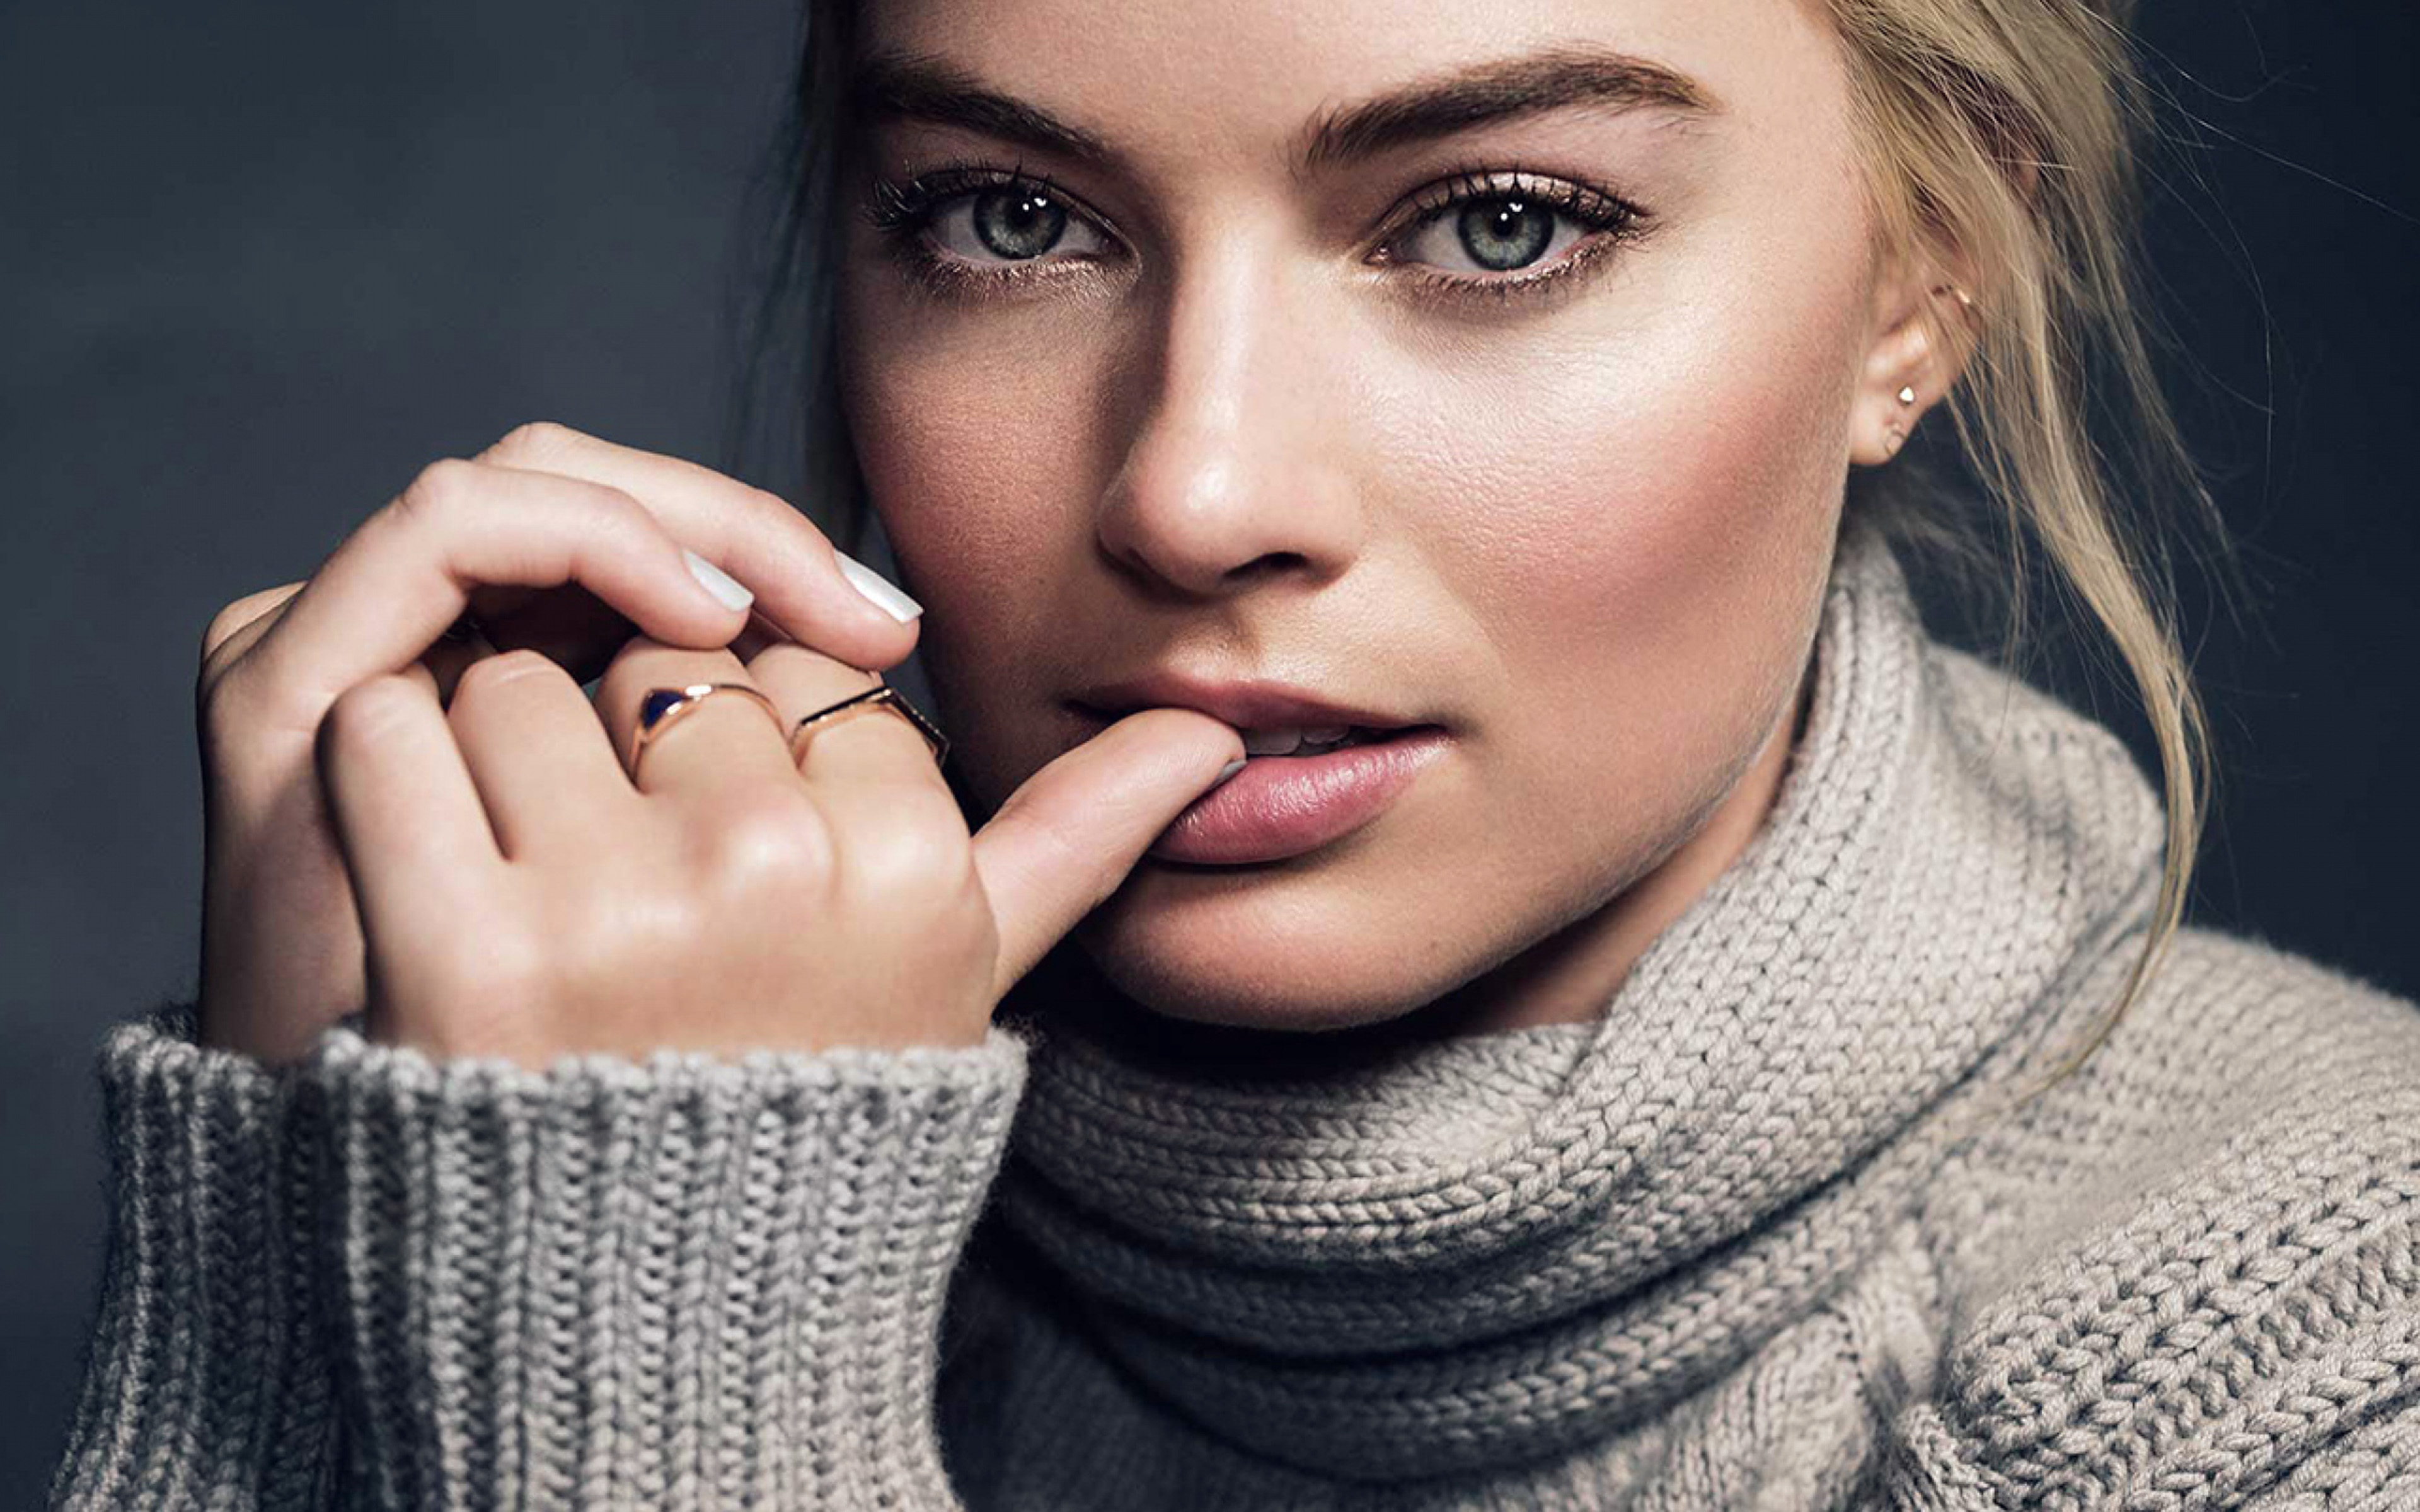 Pretty Fall Wallpapers Hj26 Margot Robbie Photoshoot Celebrity Gril Wallpaper